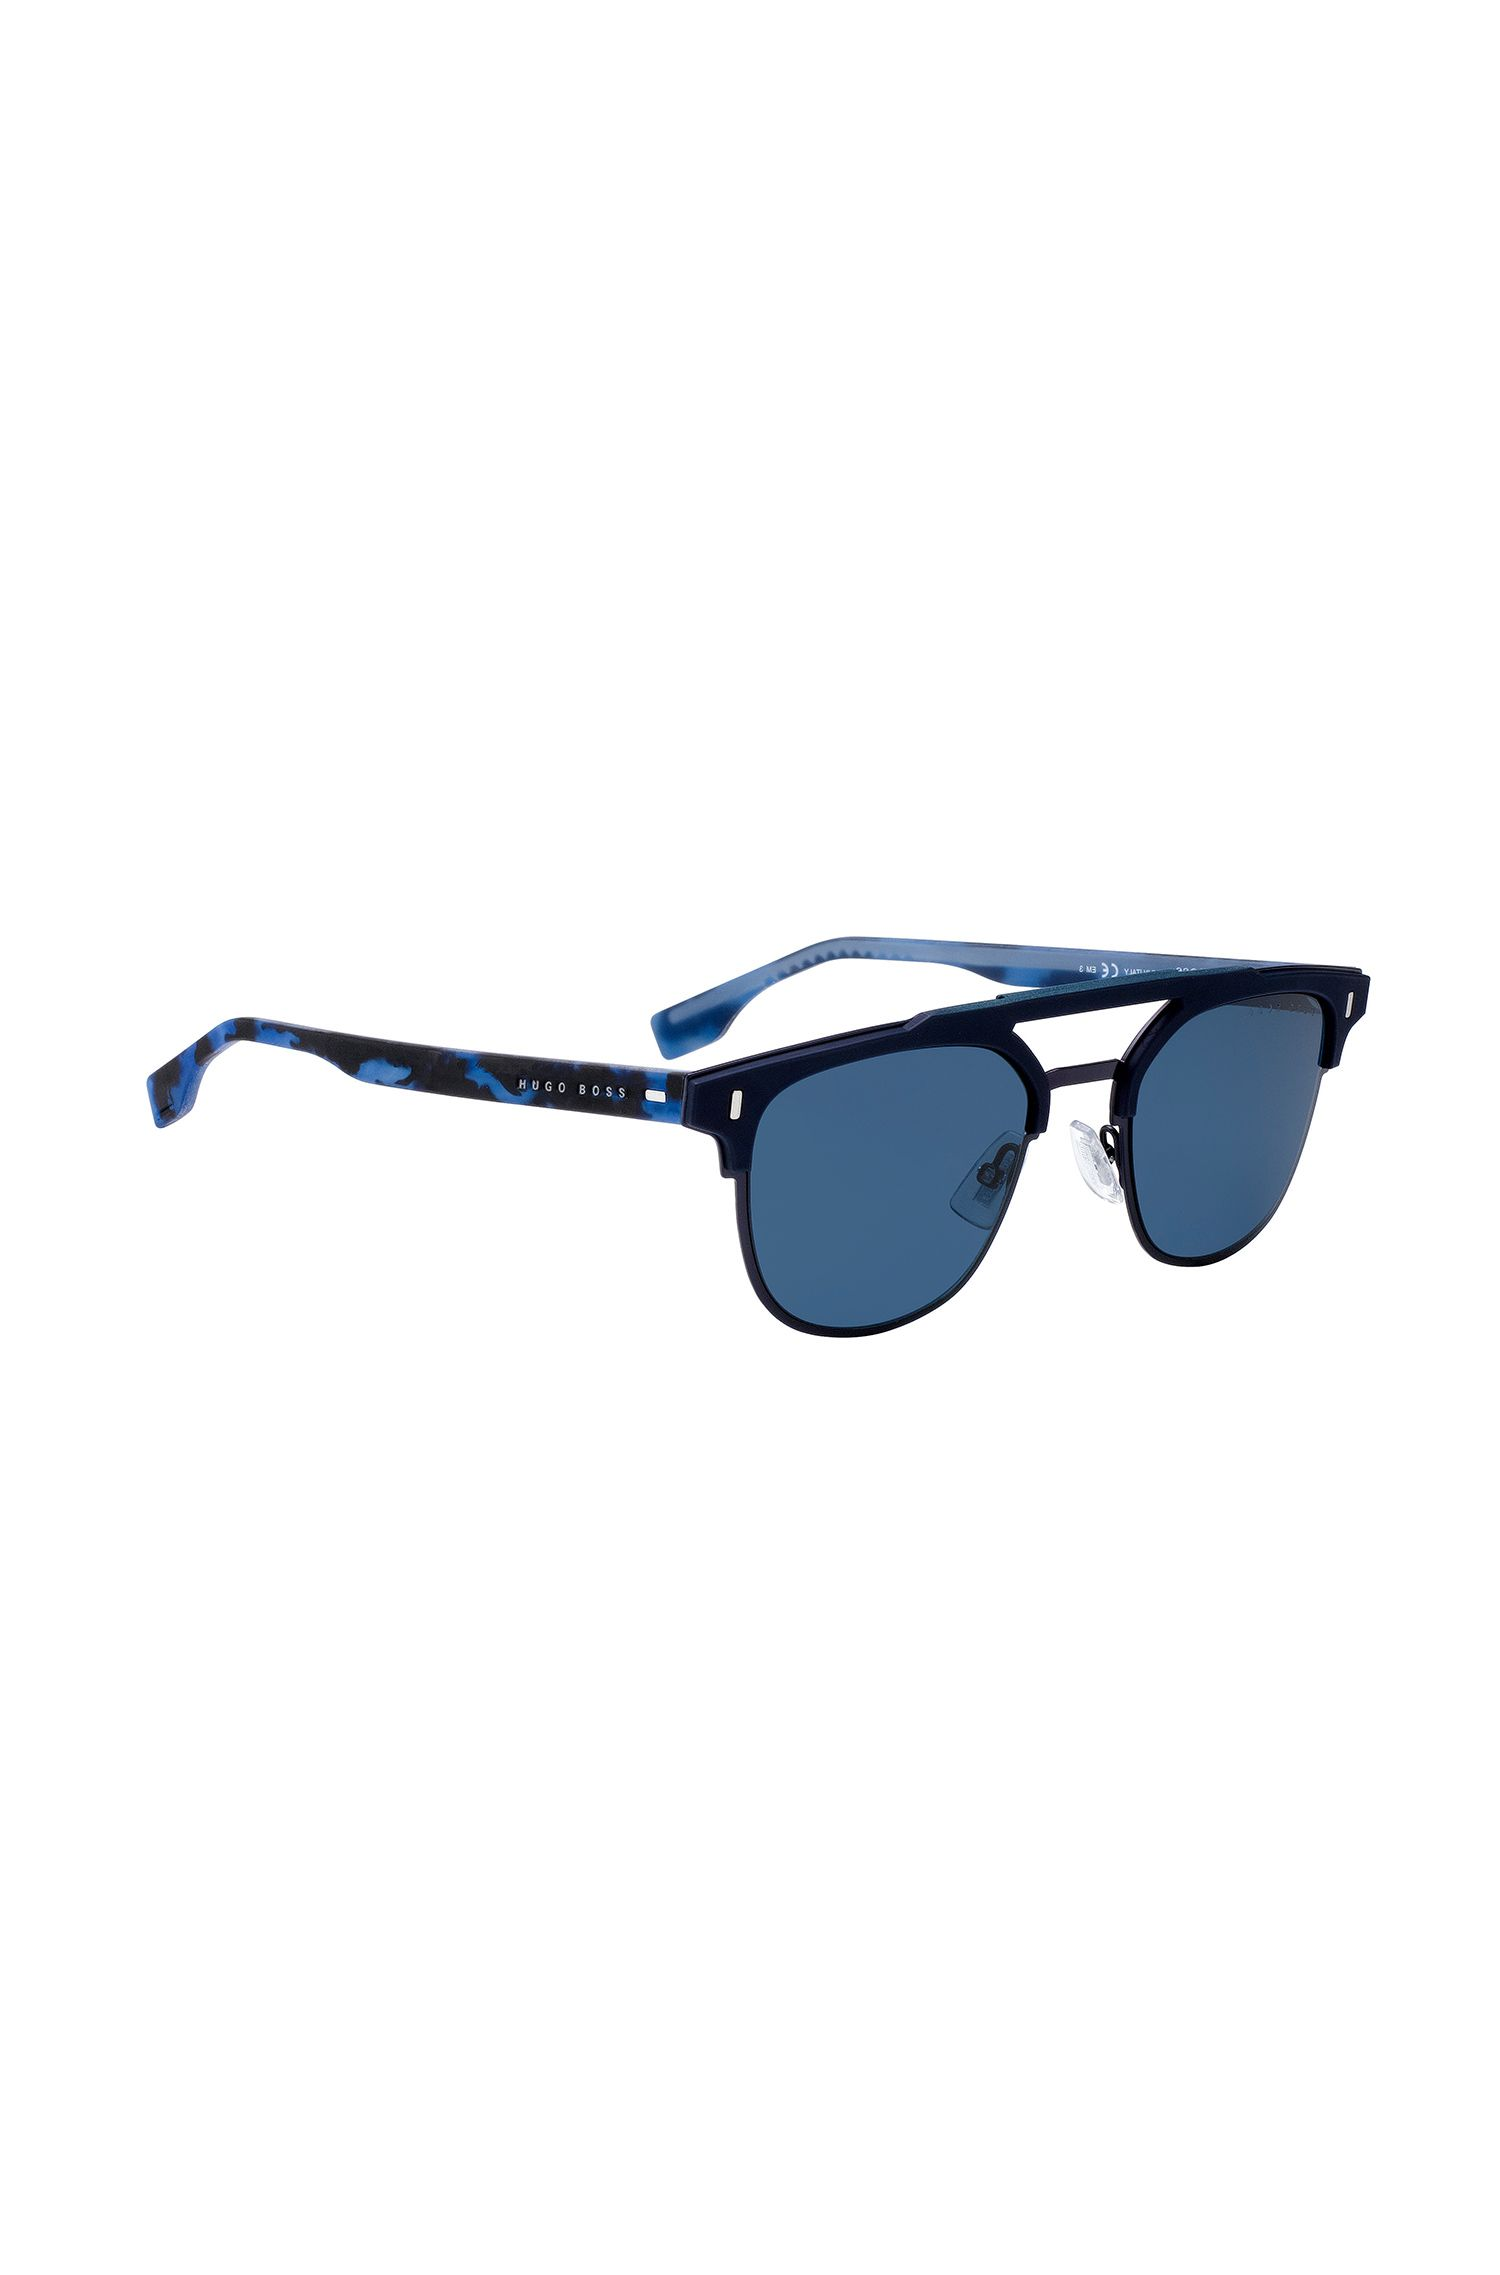 Matt-blue sunglasses with rubberised Havana temples